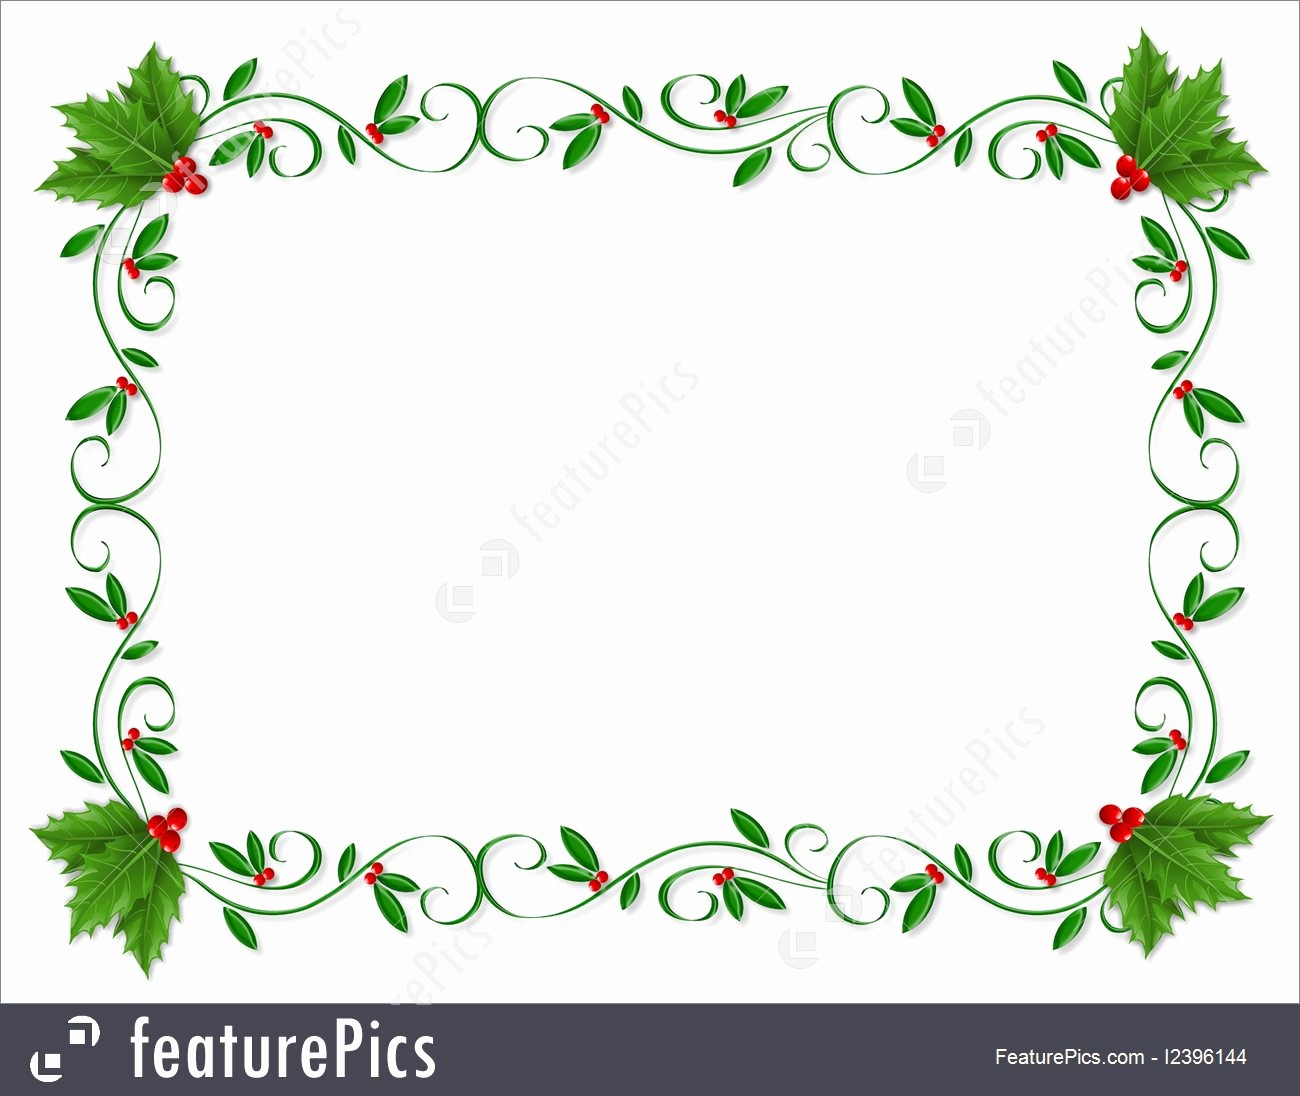 Festive Borders for Word Document Best Of Christmas Holly Border ornamental Illustration